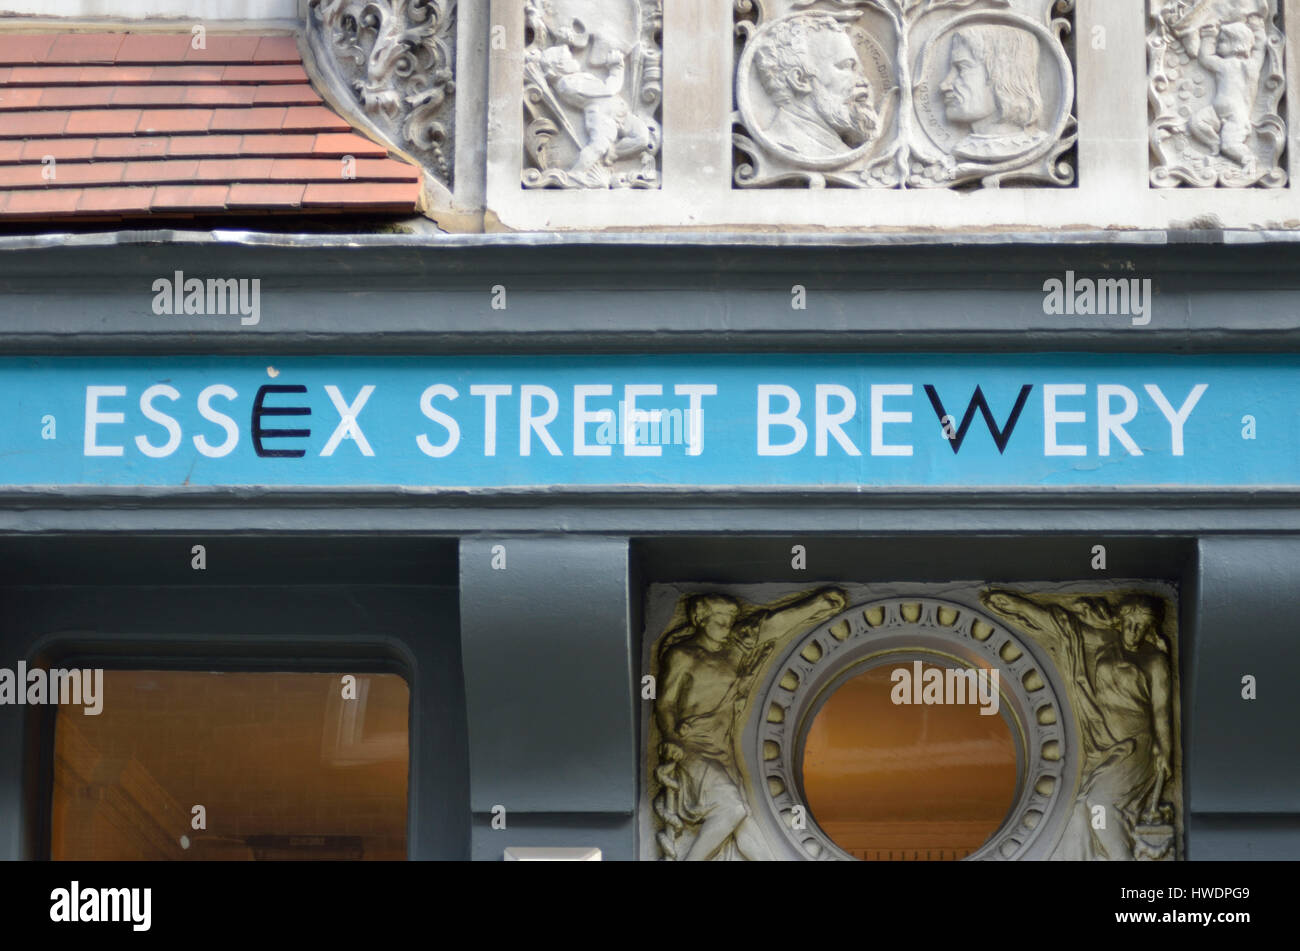 The Temple Brew House - Essex Street Brewery microbrewery pub in the City of London, UK. - Stock Image